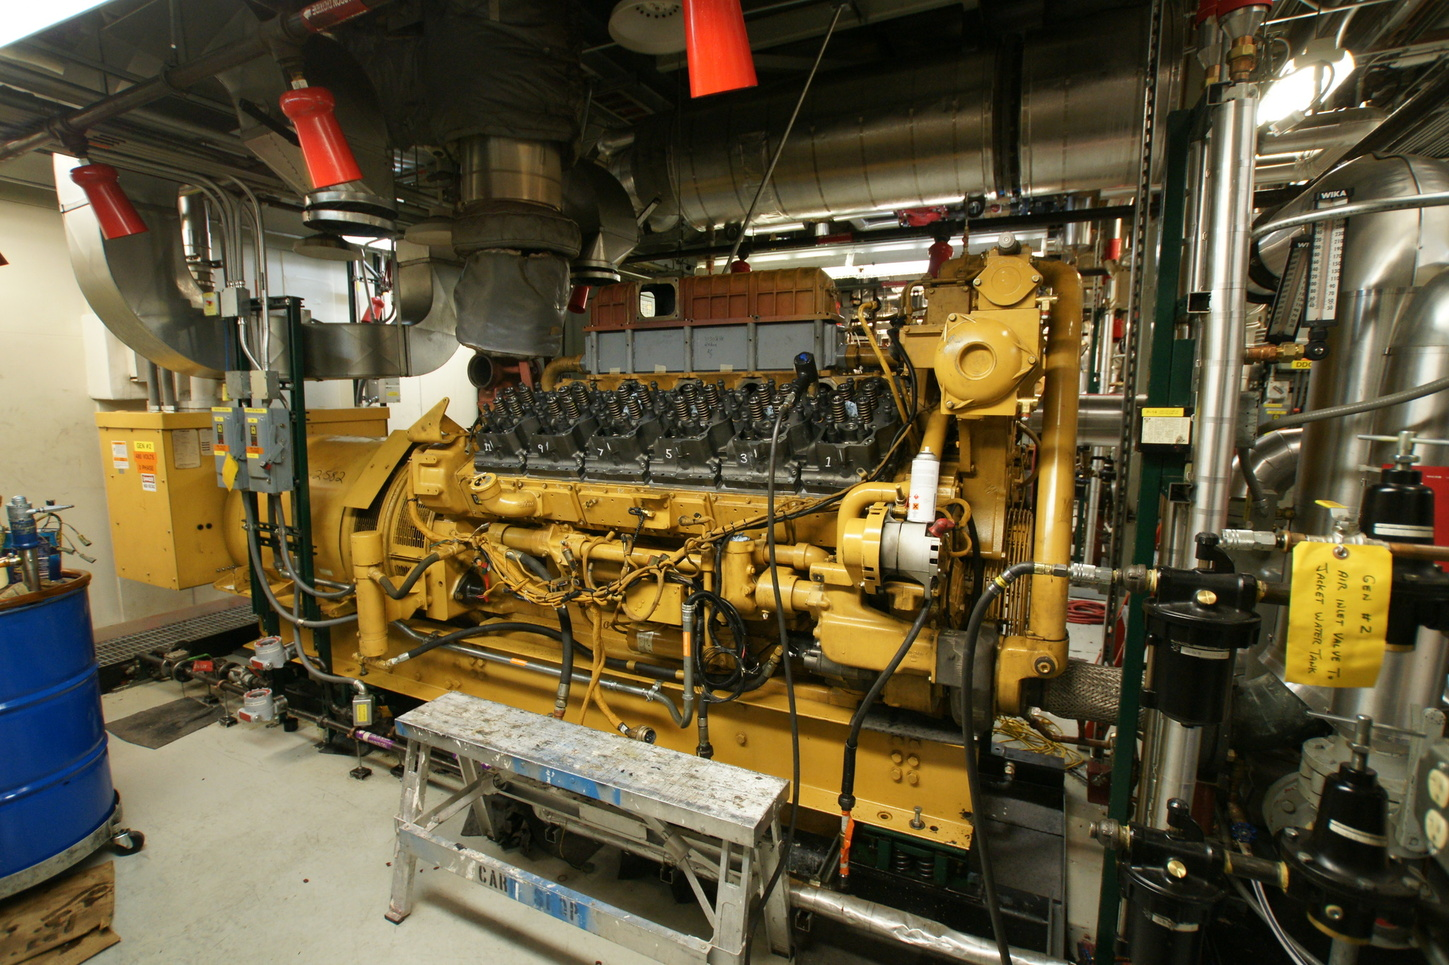 diesel mechanic 239 diesel mechanic jobs in new zealand available on trade me jobs now – your dream job lives here – apply today.